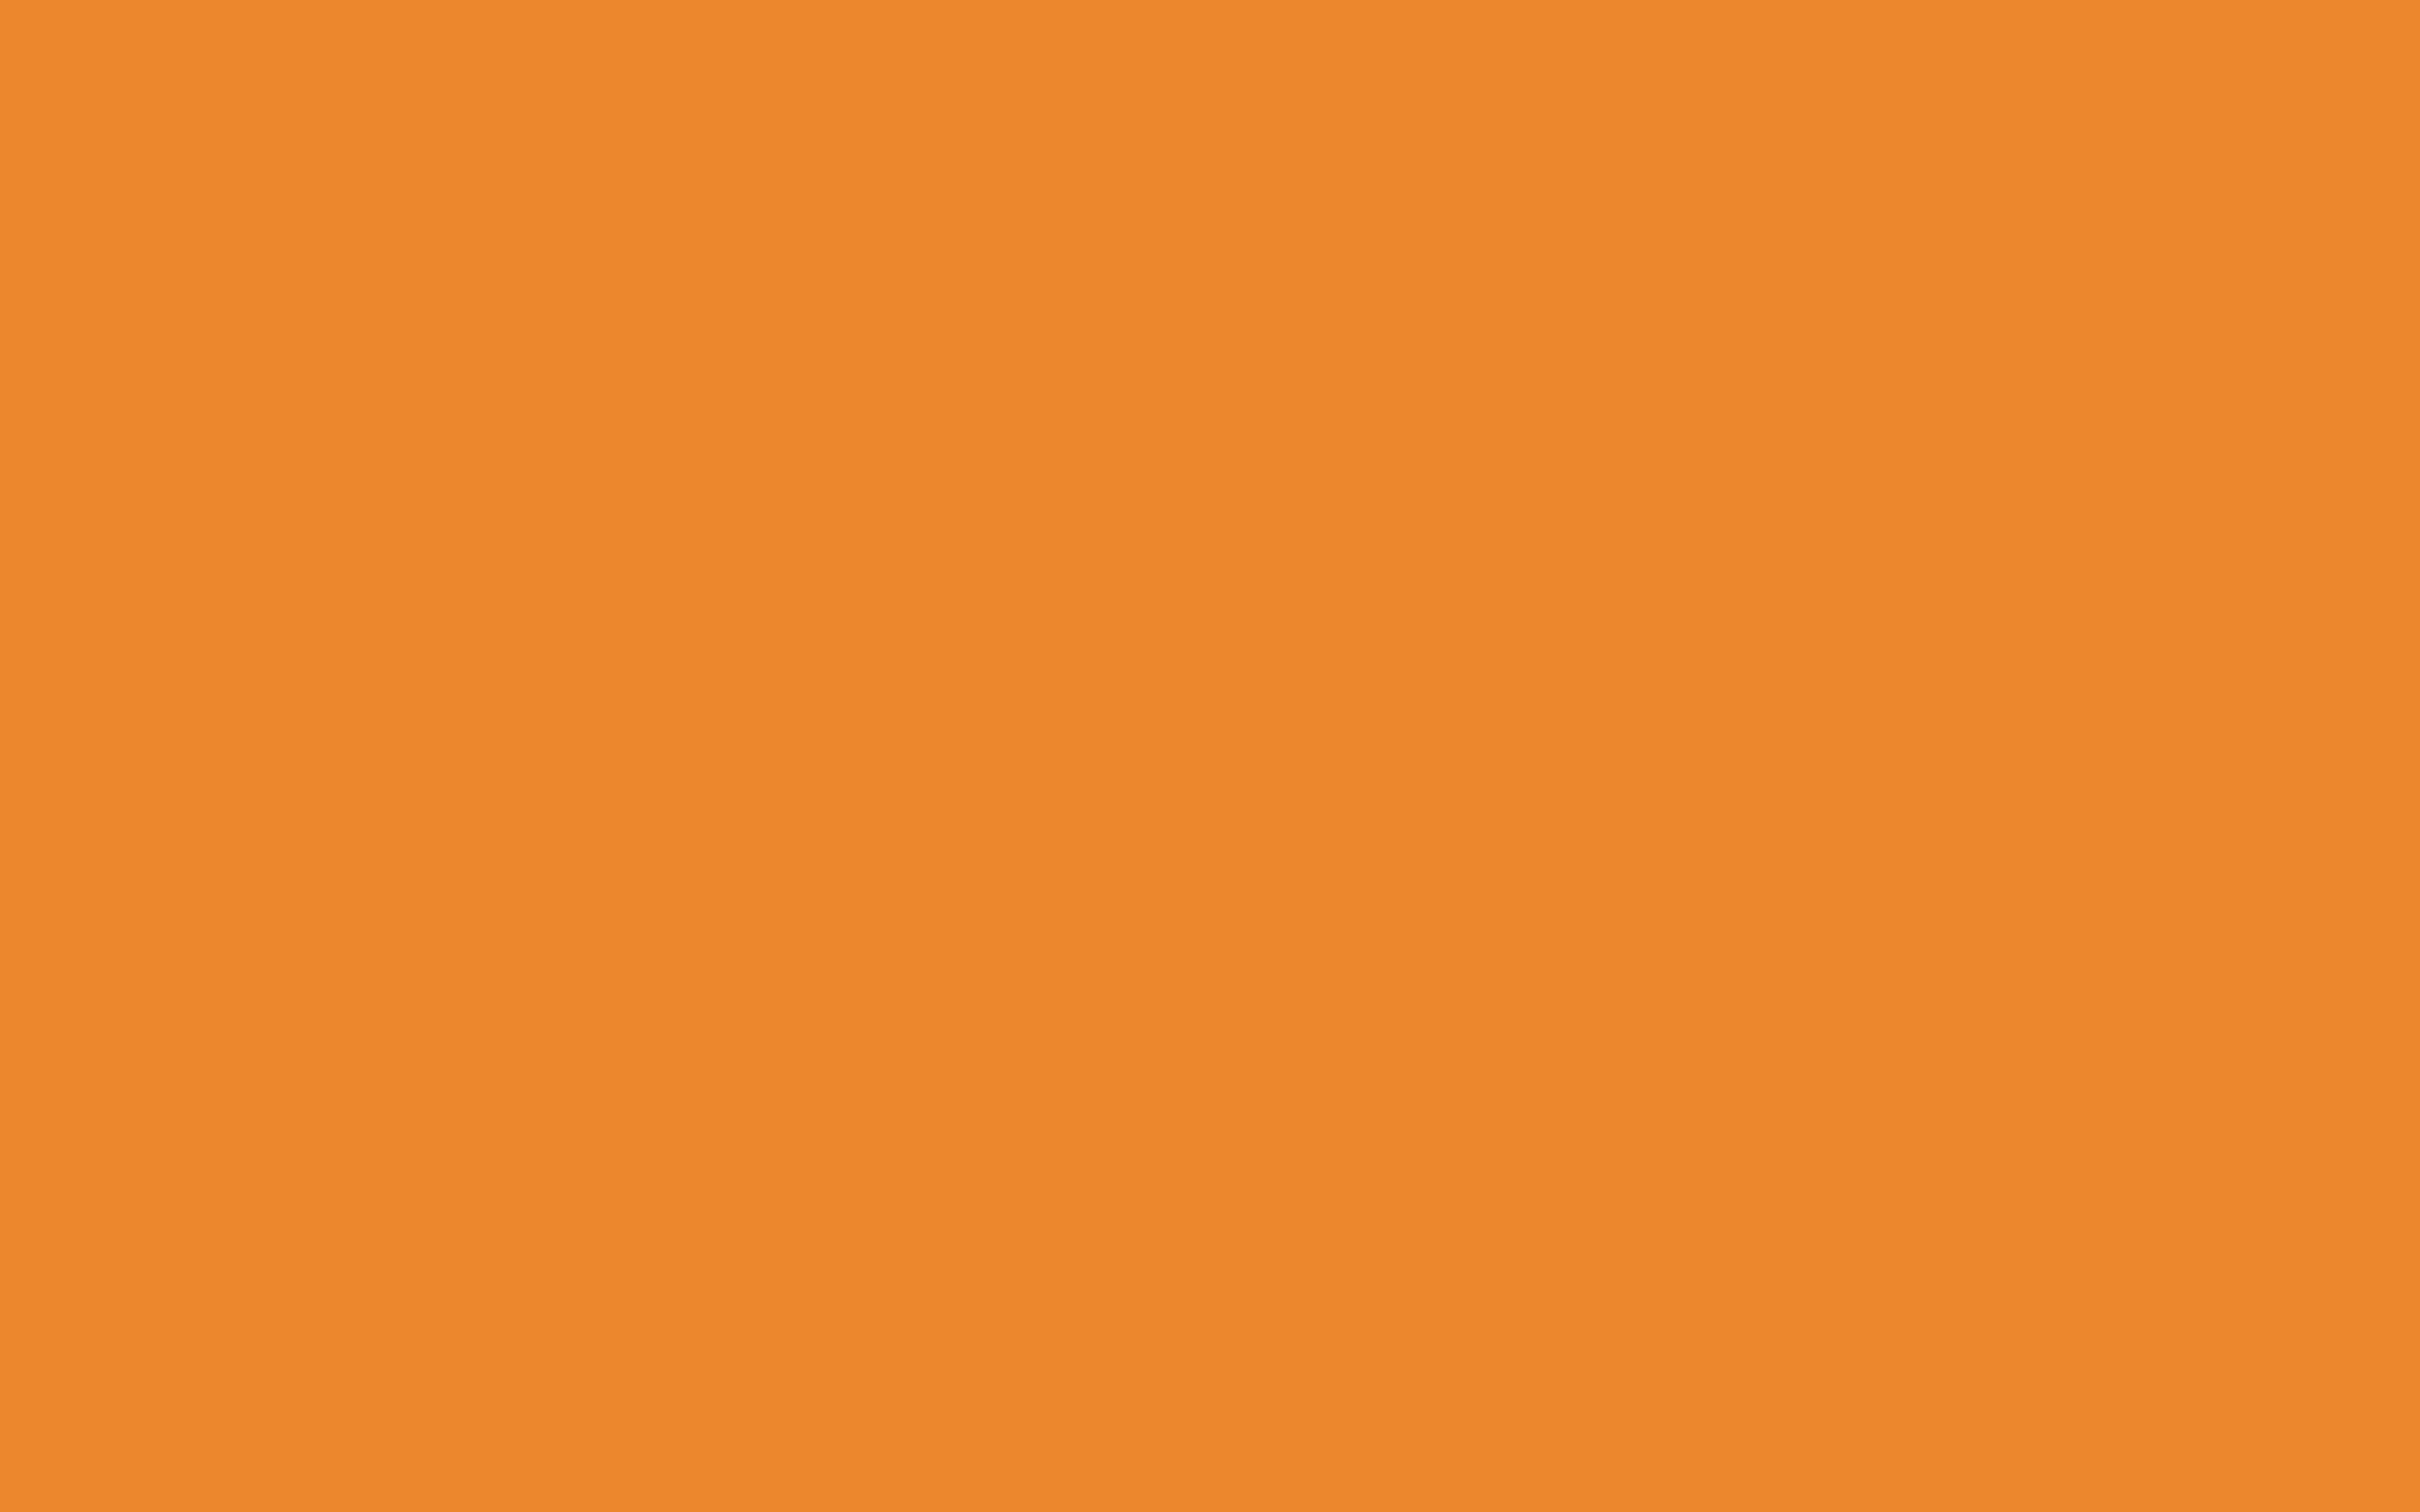 2560x1600 Cadmium Orange Solid Color Background